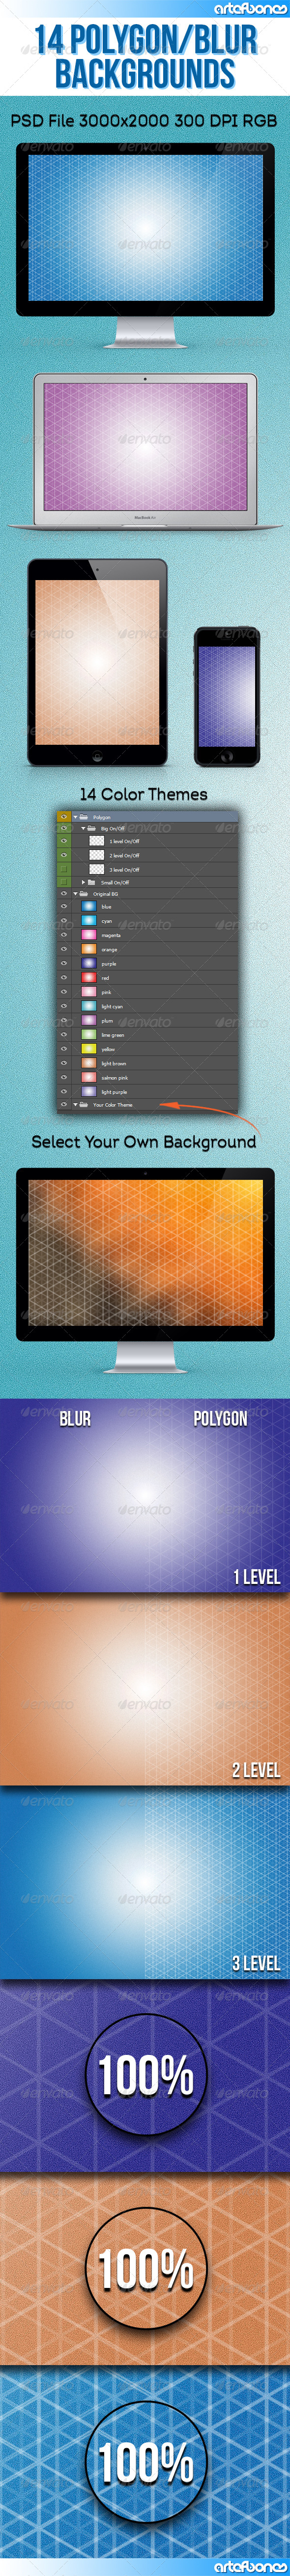 GraphicRiver 14 Polygon and Blur Backgrounds Vol.2 8575890